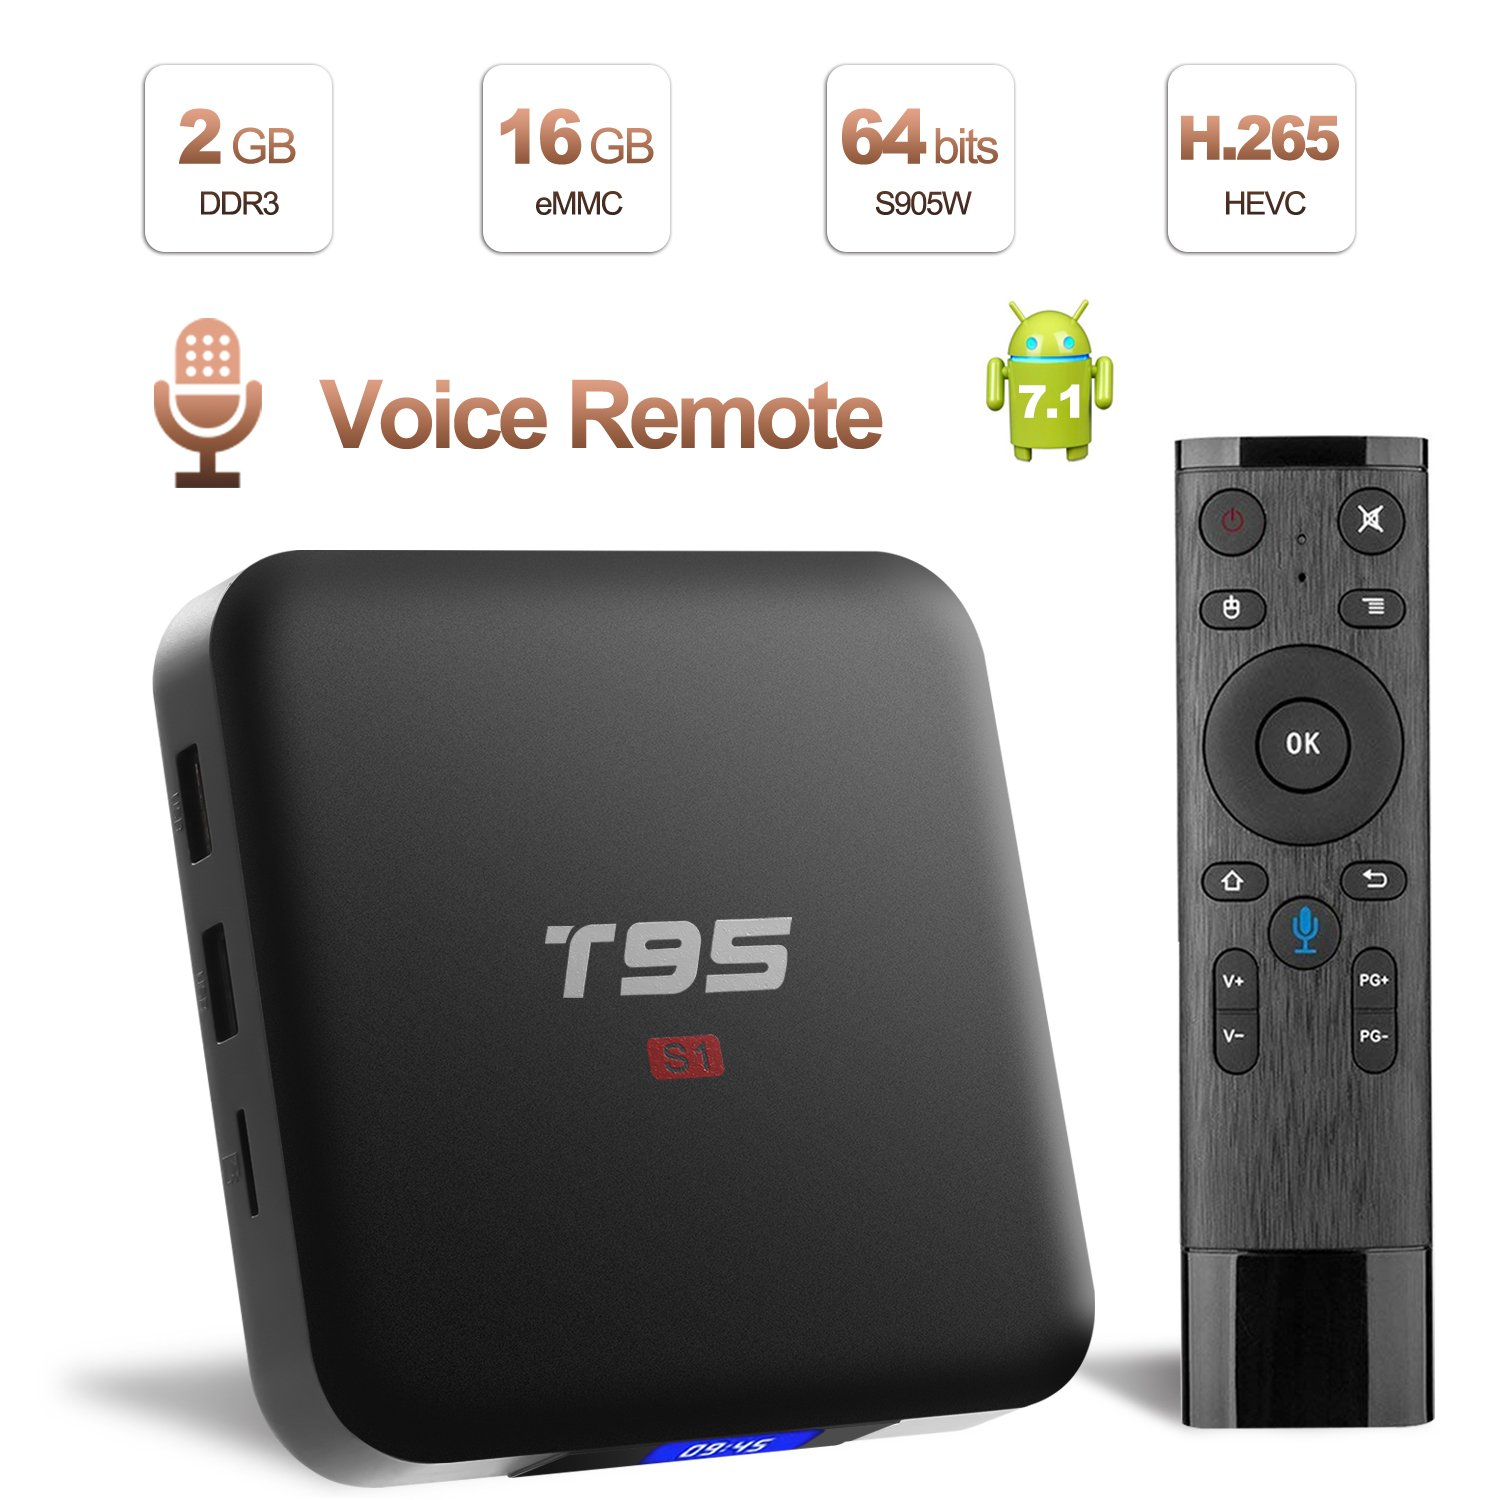 Android TV Box with Voice Remote, LIVEBOX S1 Android 7.1 TV Box 2GB RAM 16GB ROM Amlogic S905W Octa core Cortex-A53 CPU 64 Bits and Support WiFi 2.4GHz/4K (60Hz)/H.265 LIVEBOX-S1